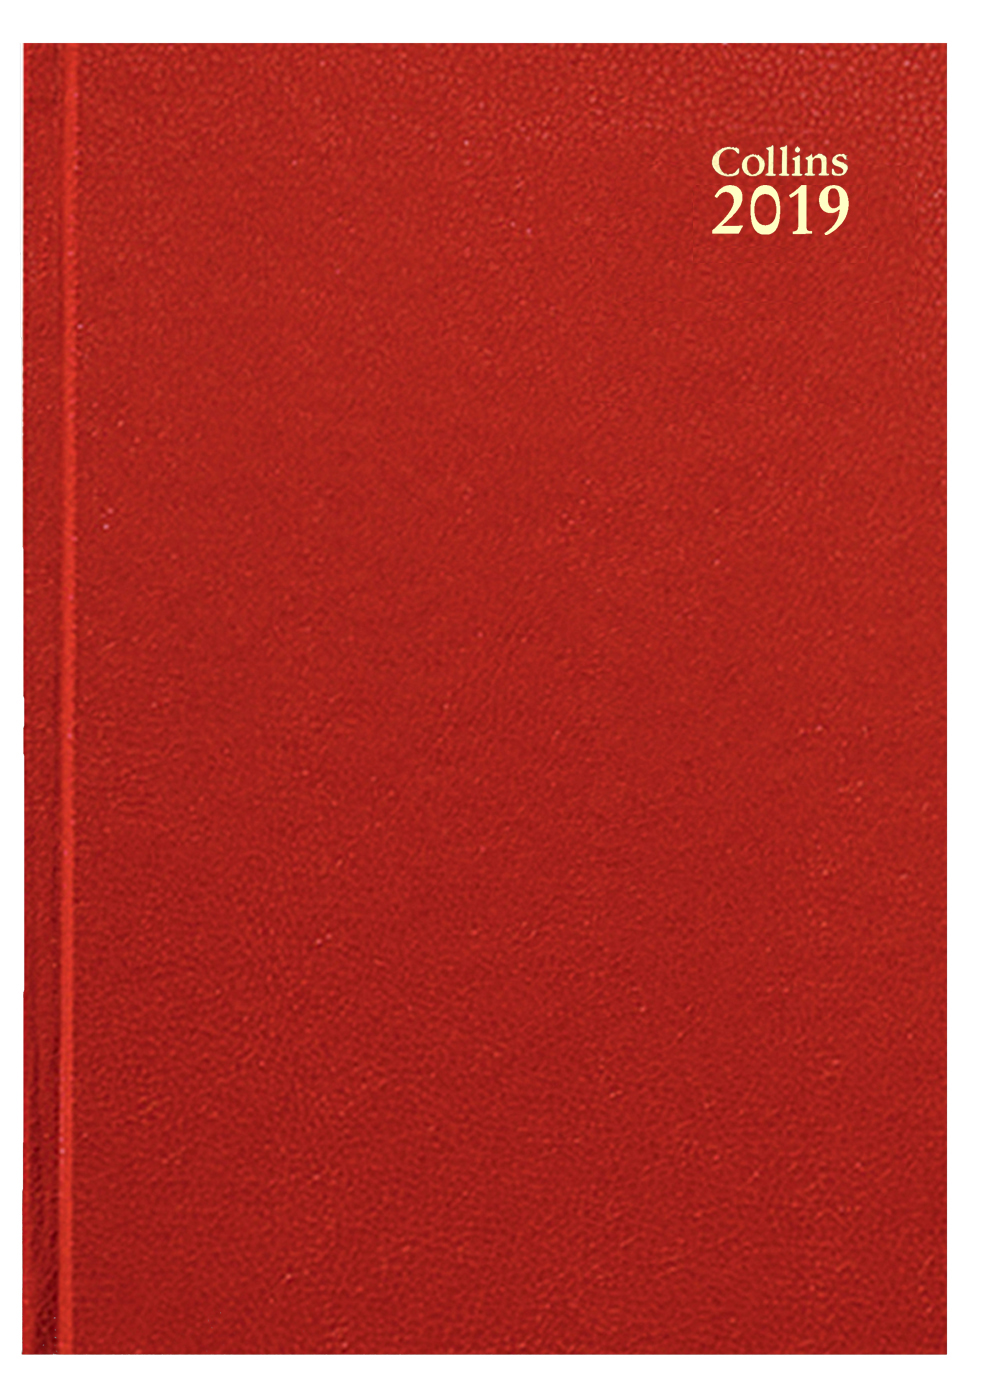 Collins A5 Desk Diary Week to View 2019 Red